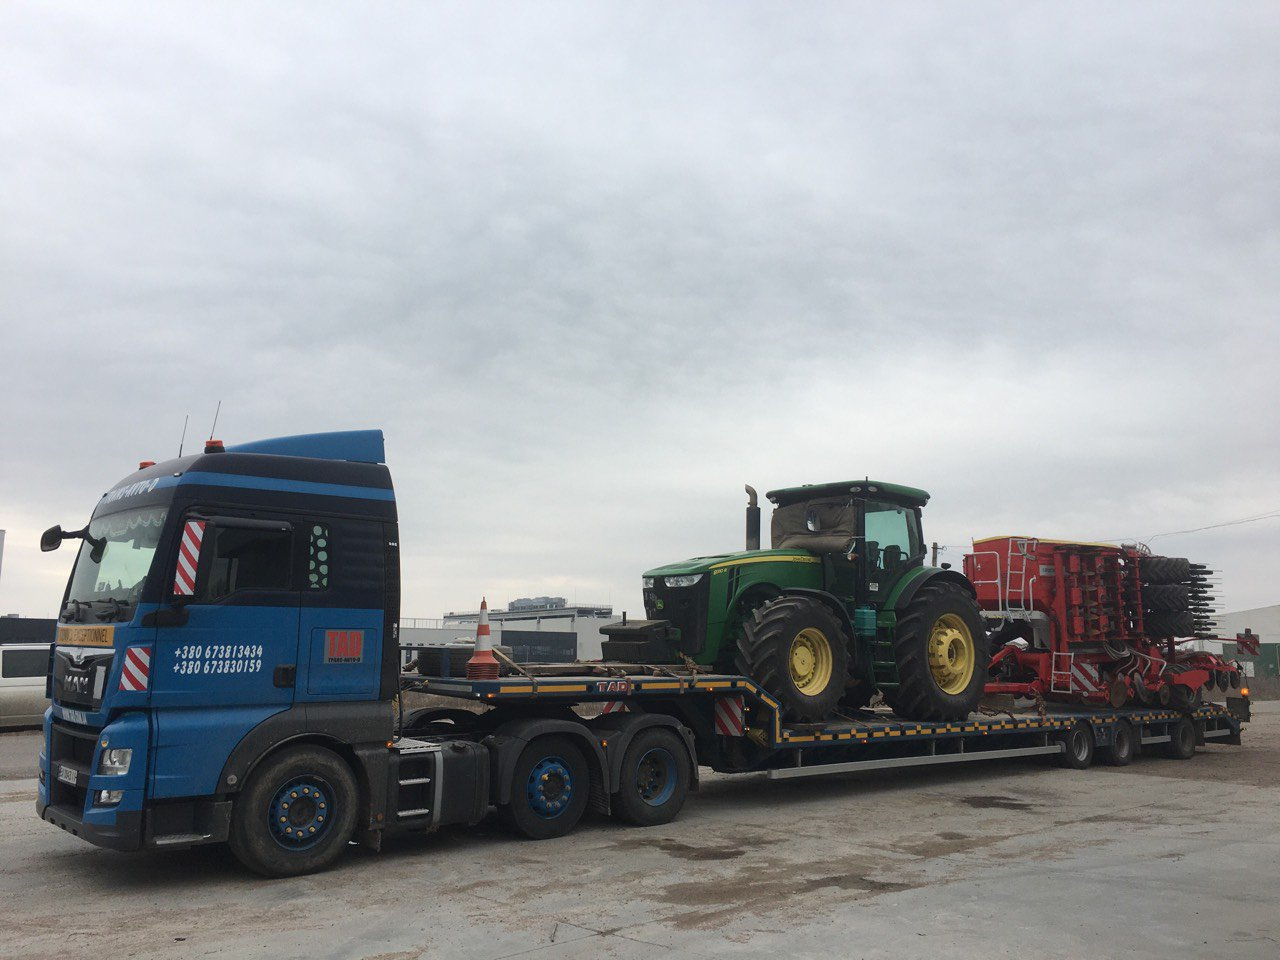 Transporting of JohnDeer tractor